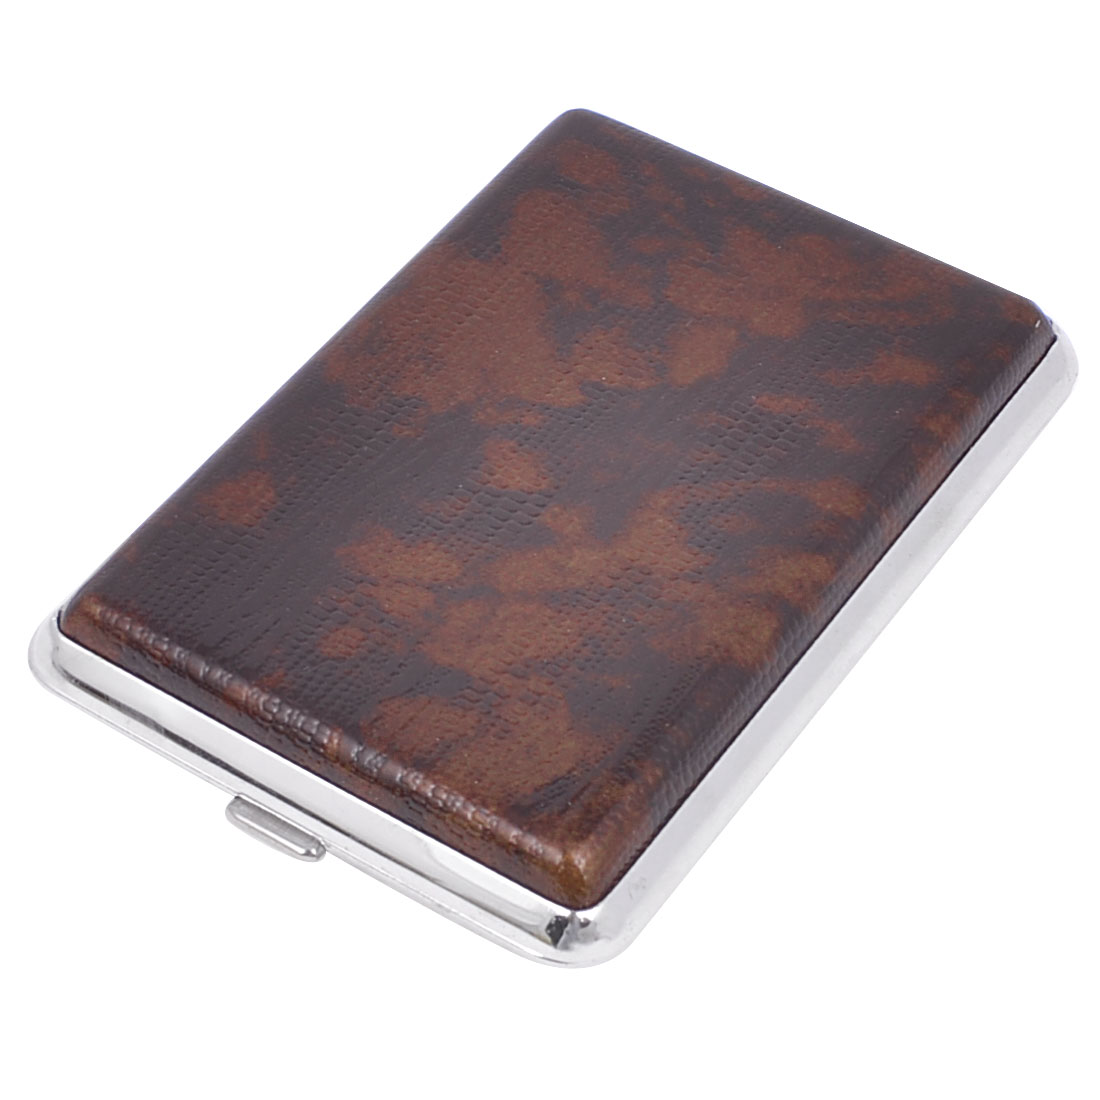 Dark Brown Rectangle Shaped Two Sides Design 14 Capacity Cigarette Box Case